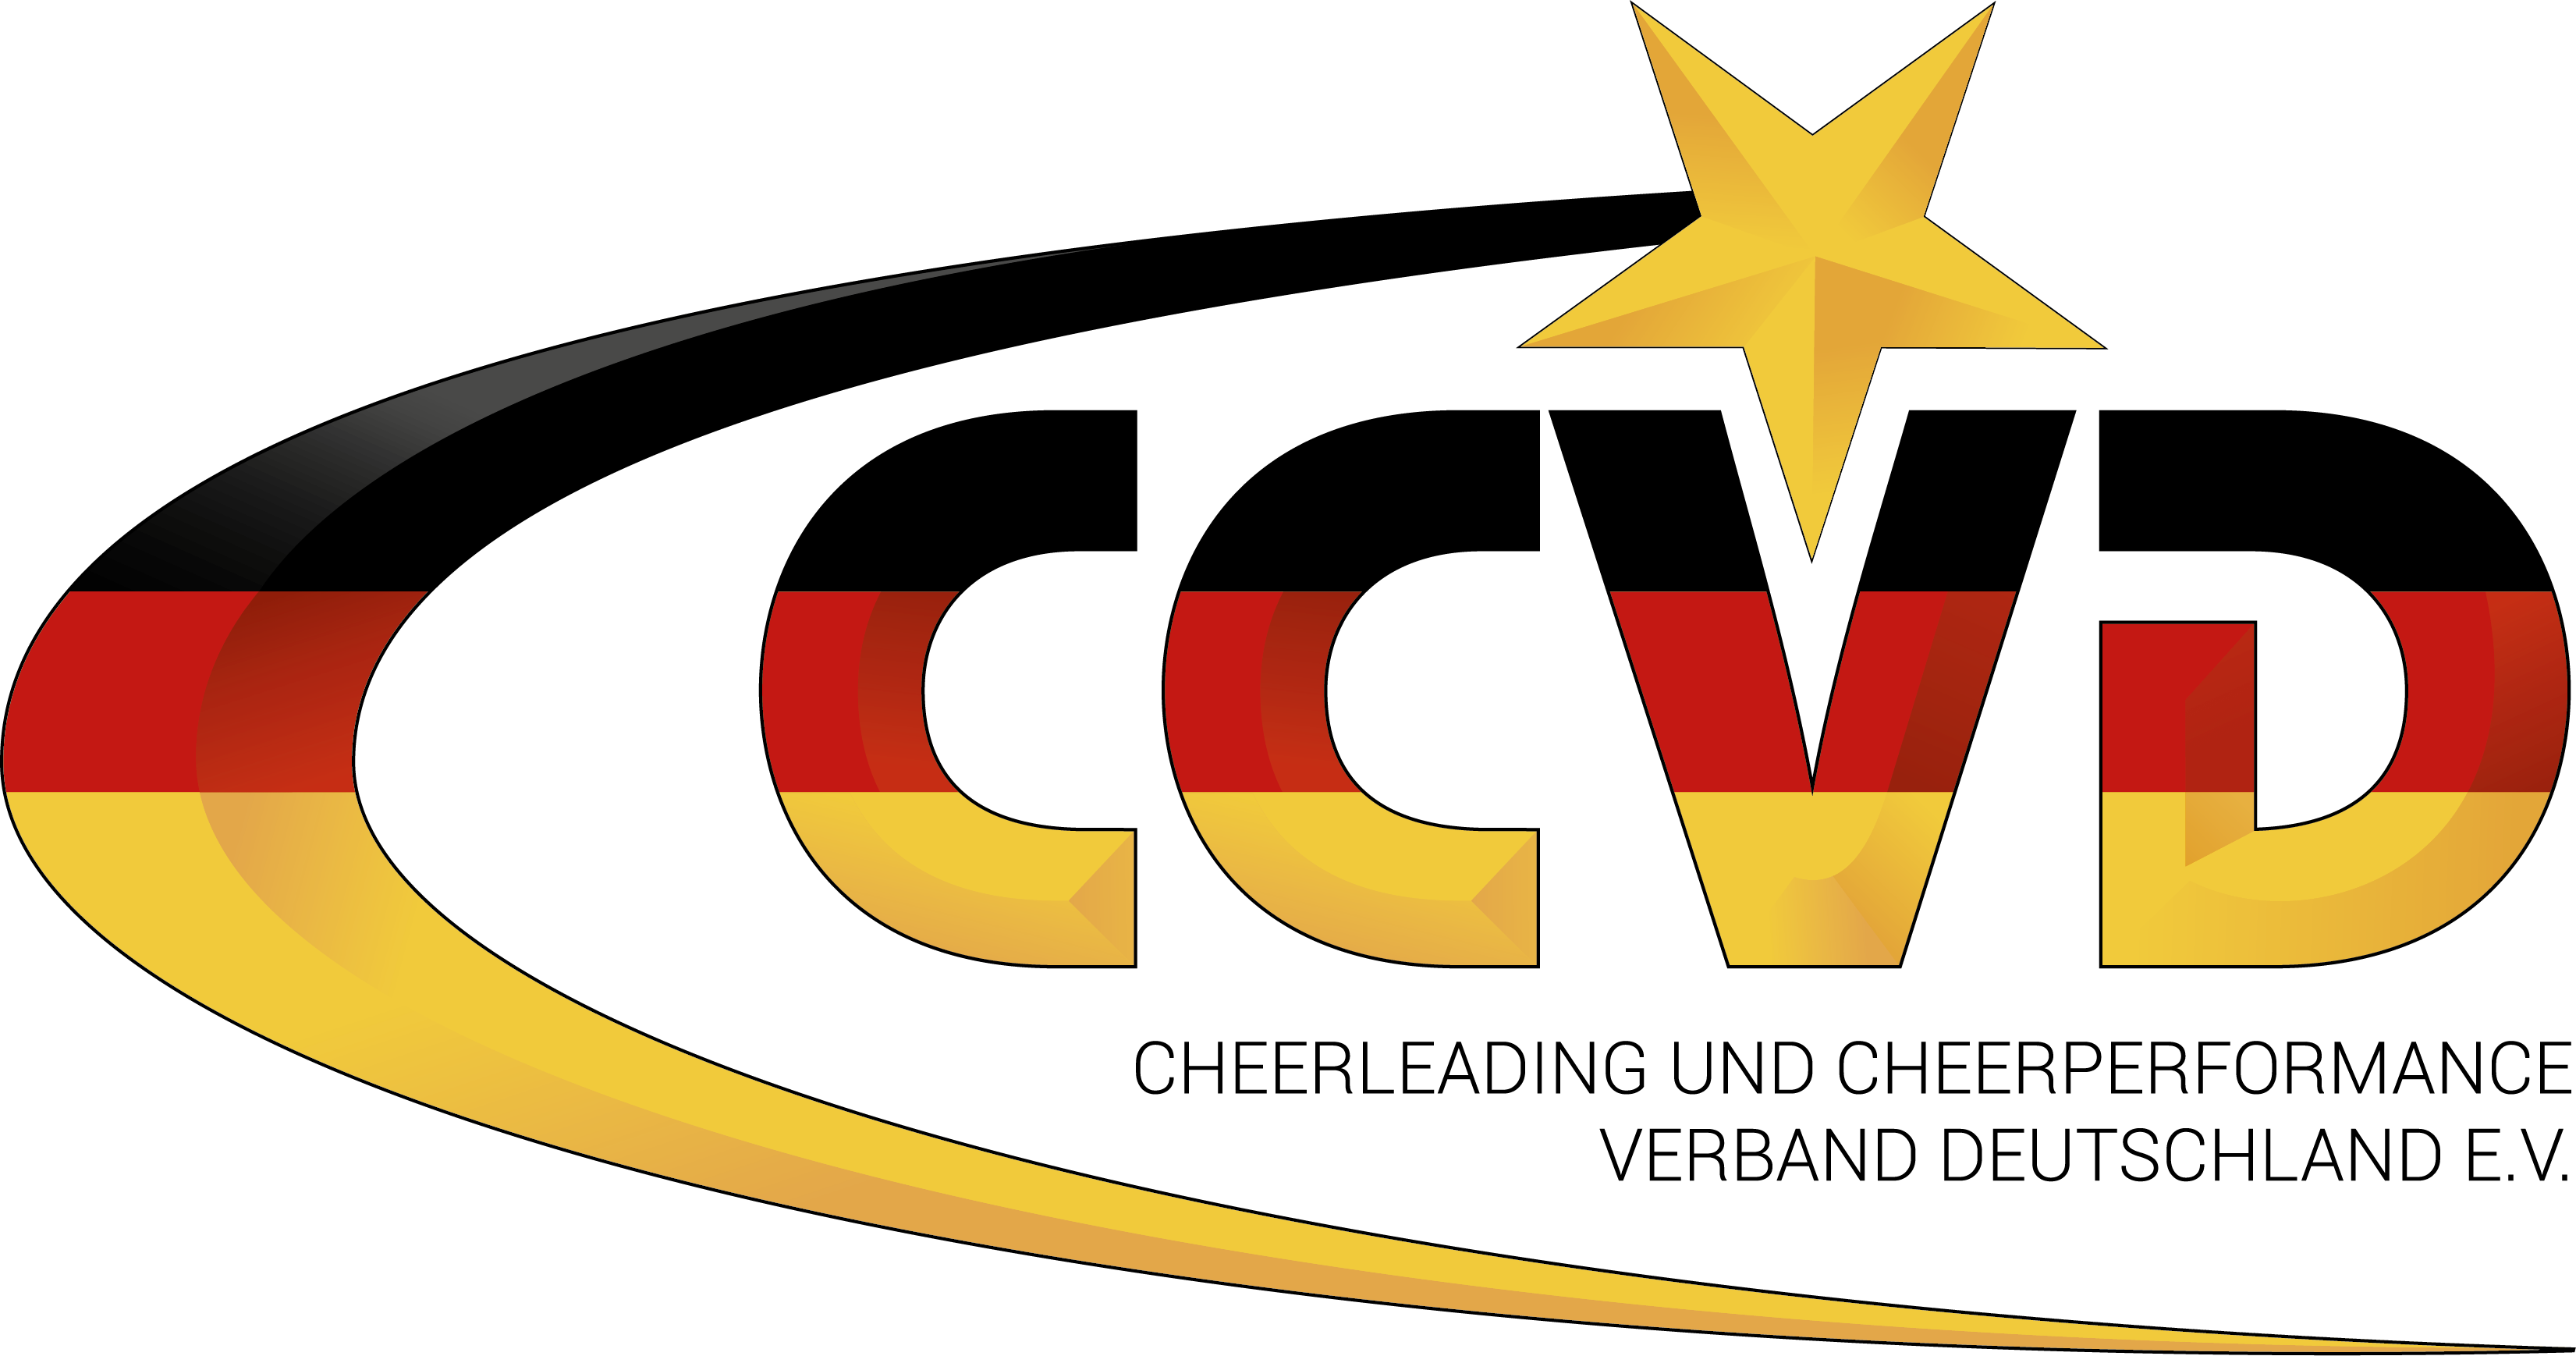 Cheerleading und Cheerdance Verband Deutschland e.V.